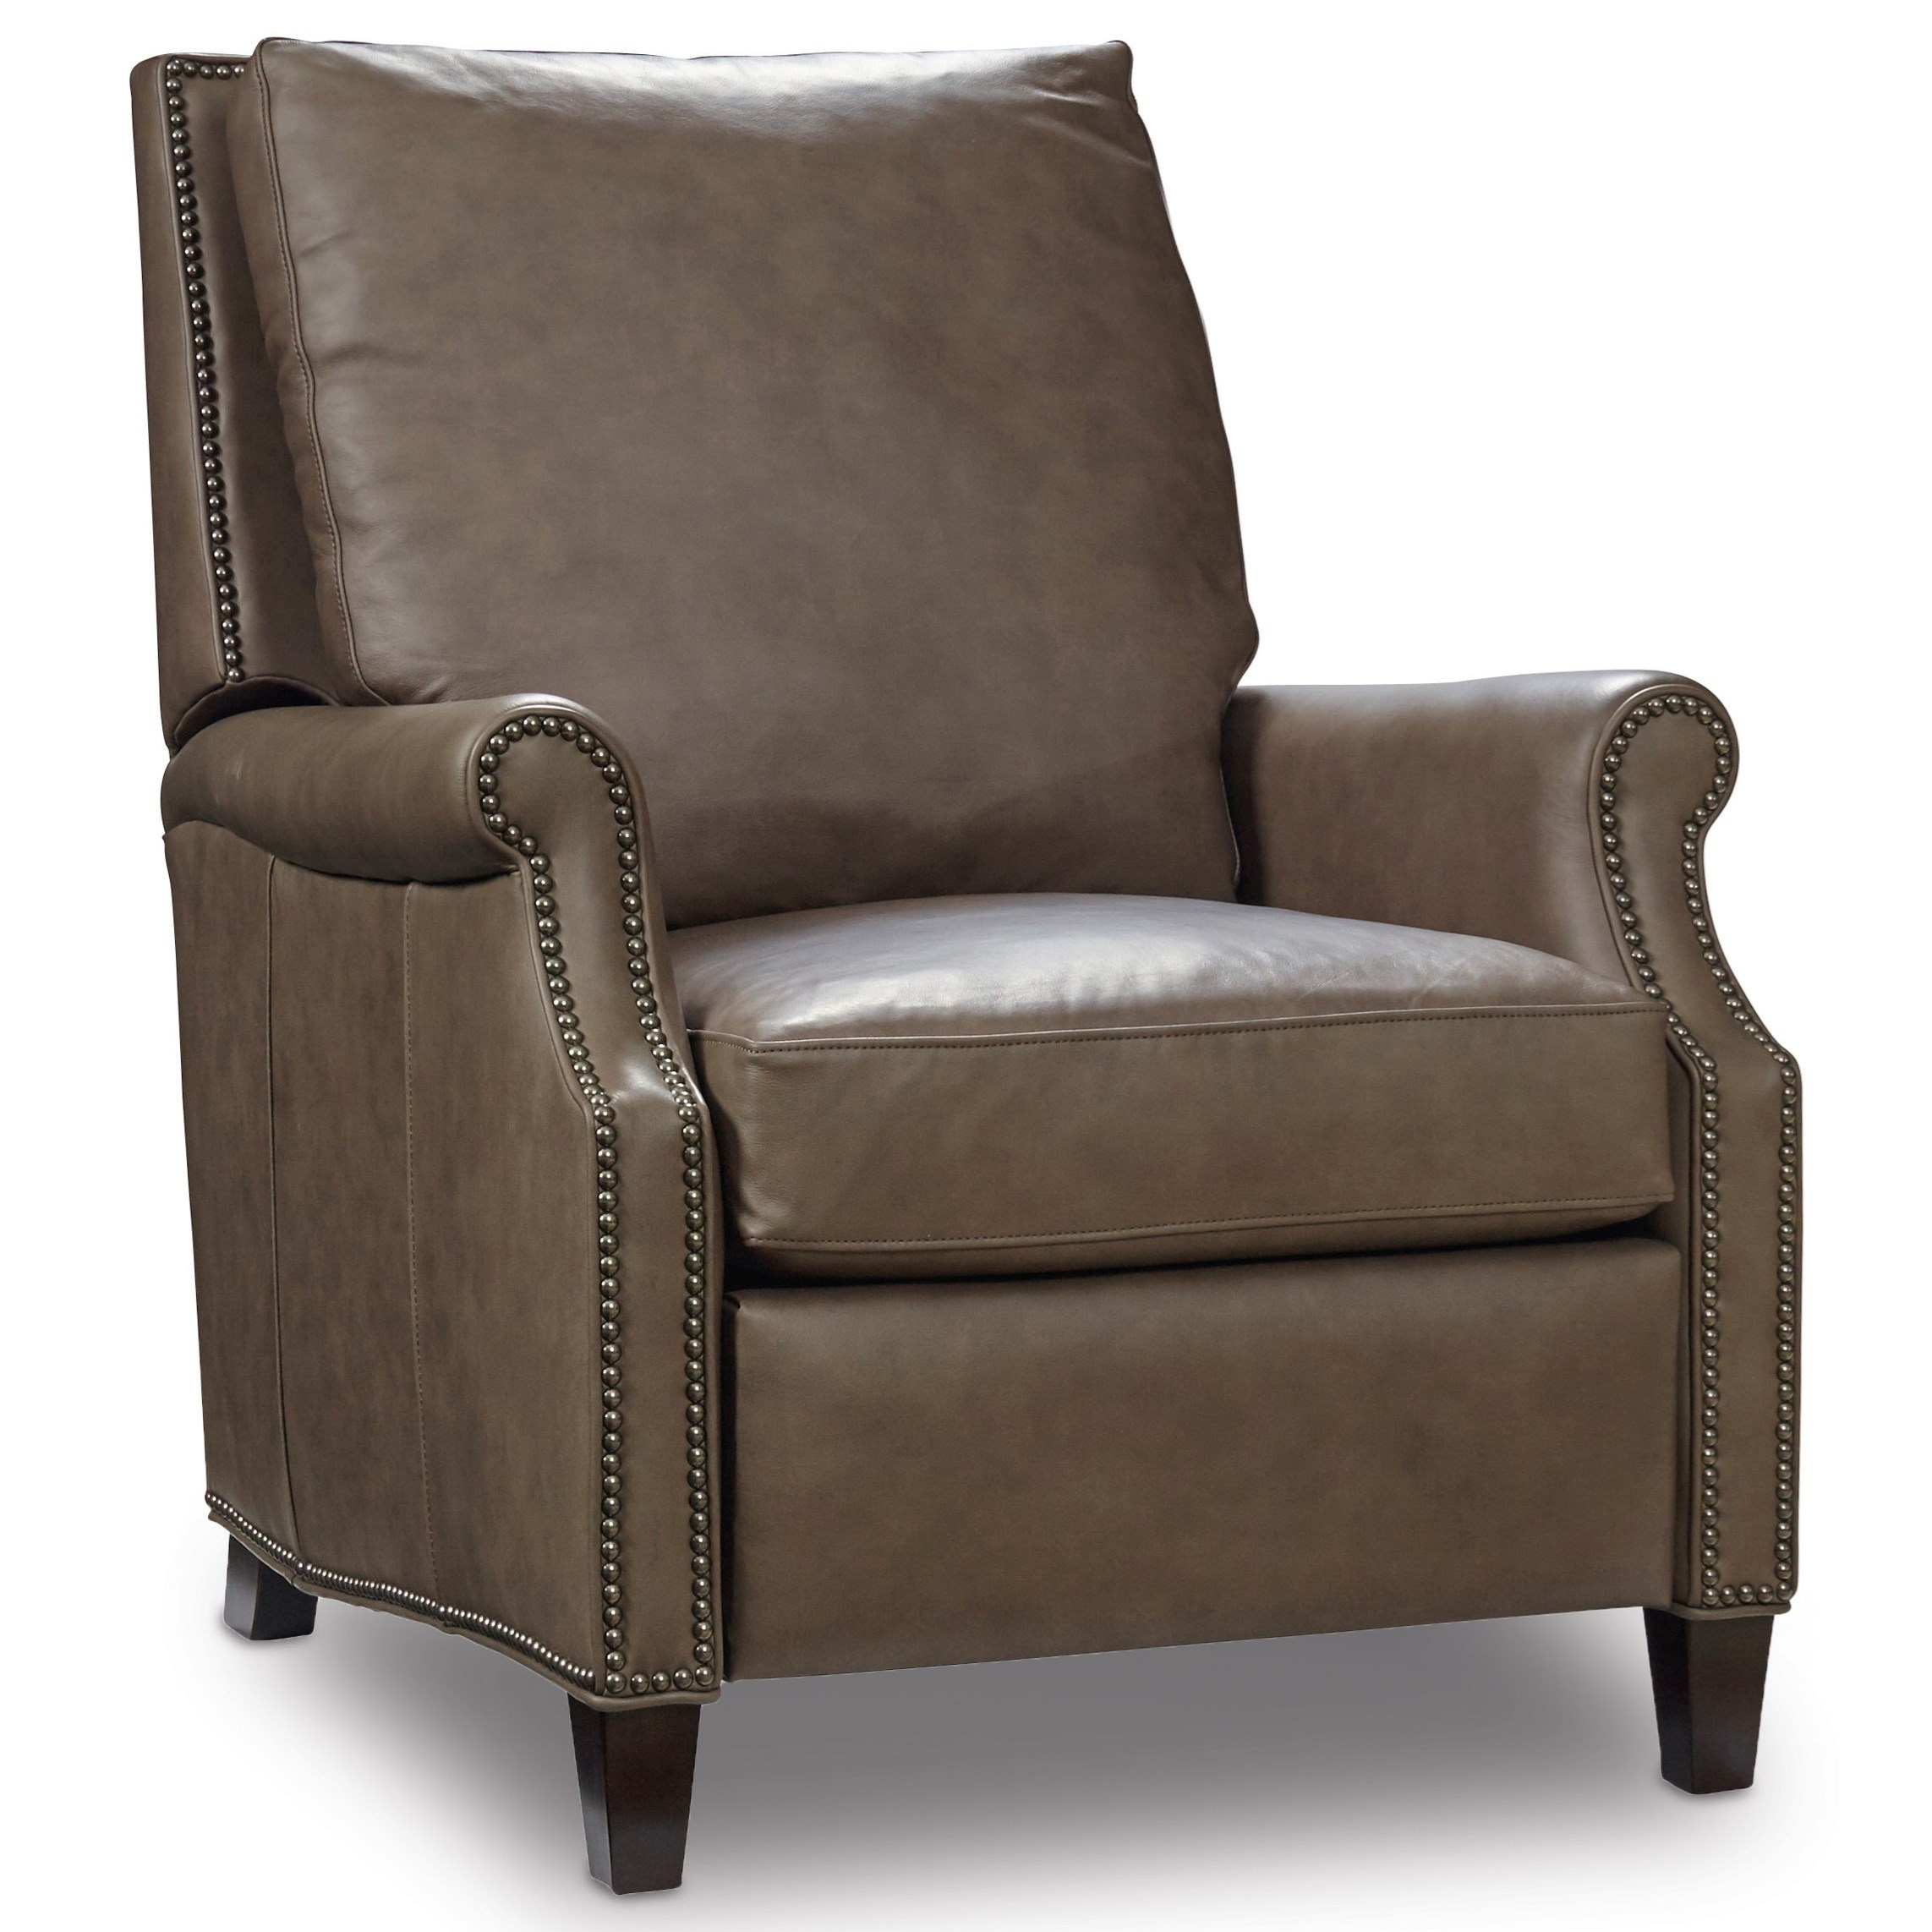 Reclining Chairs Calvin Recliner by Hooker Furniture at Miller Waldrop Furniture and Decor